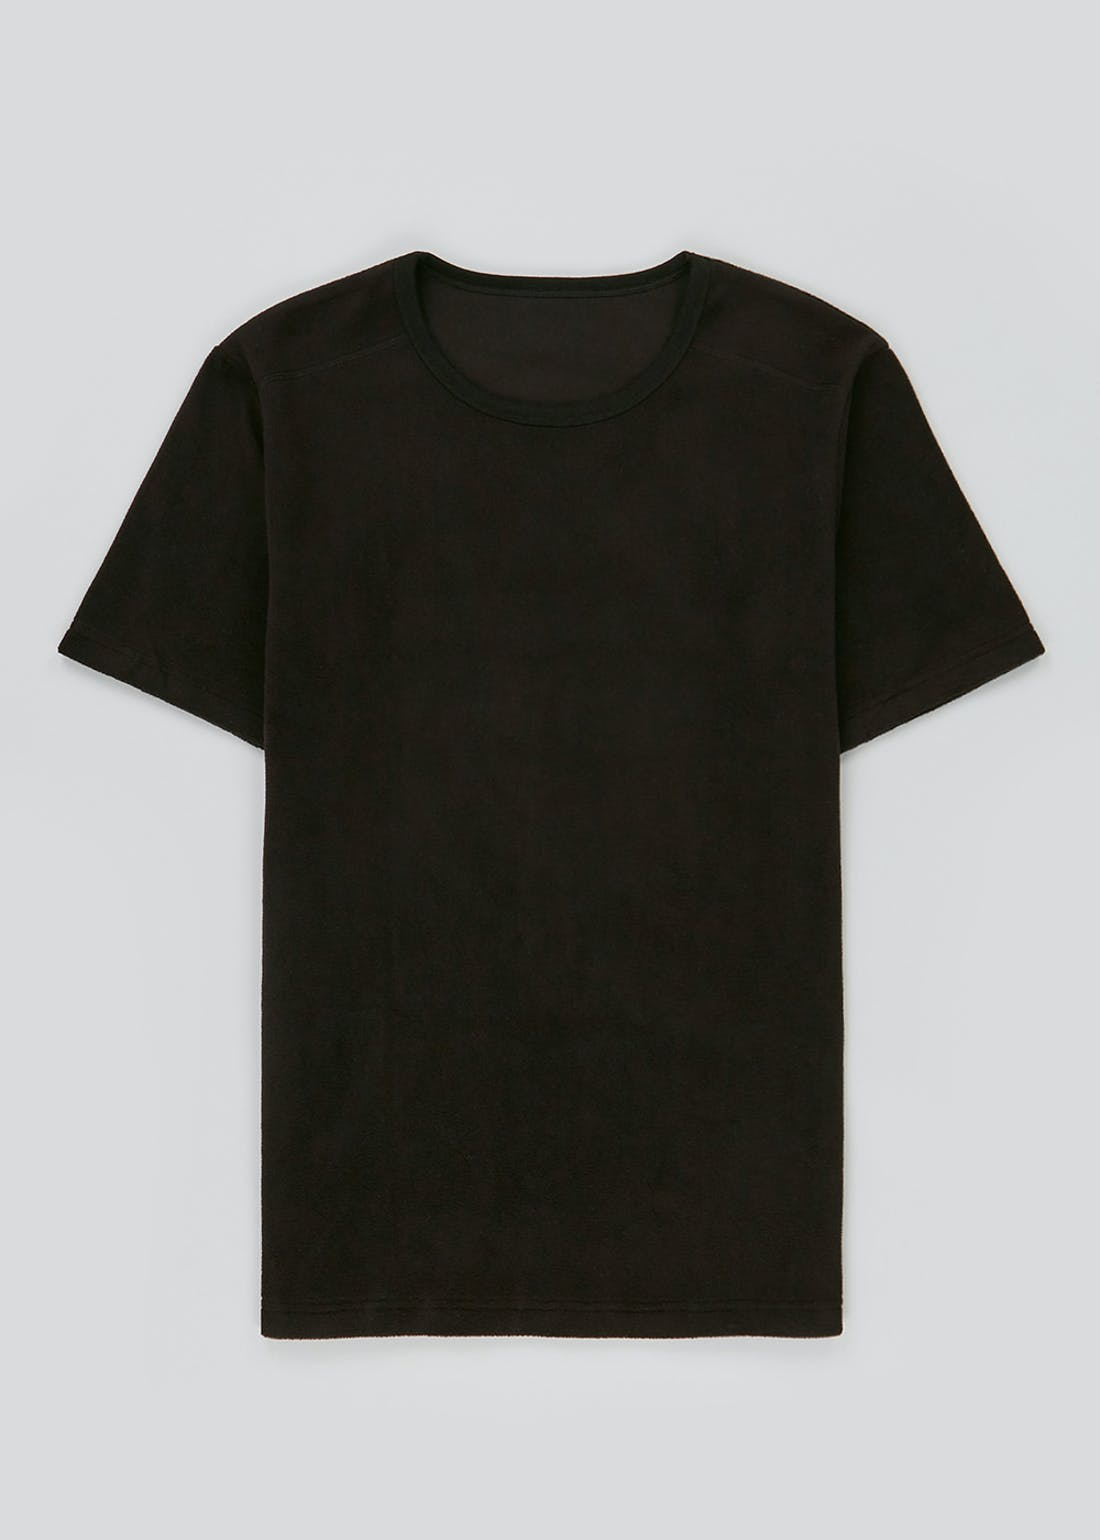 Microfleece Thermal T-Shirt